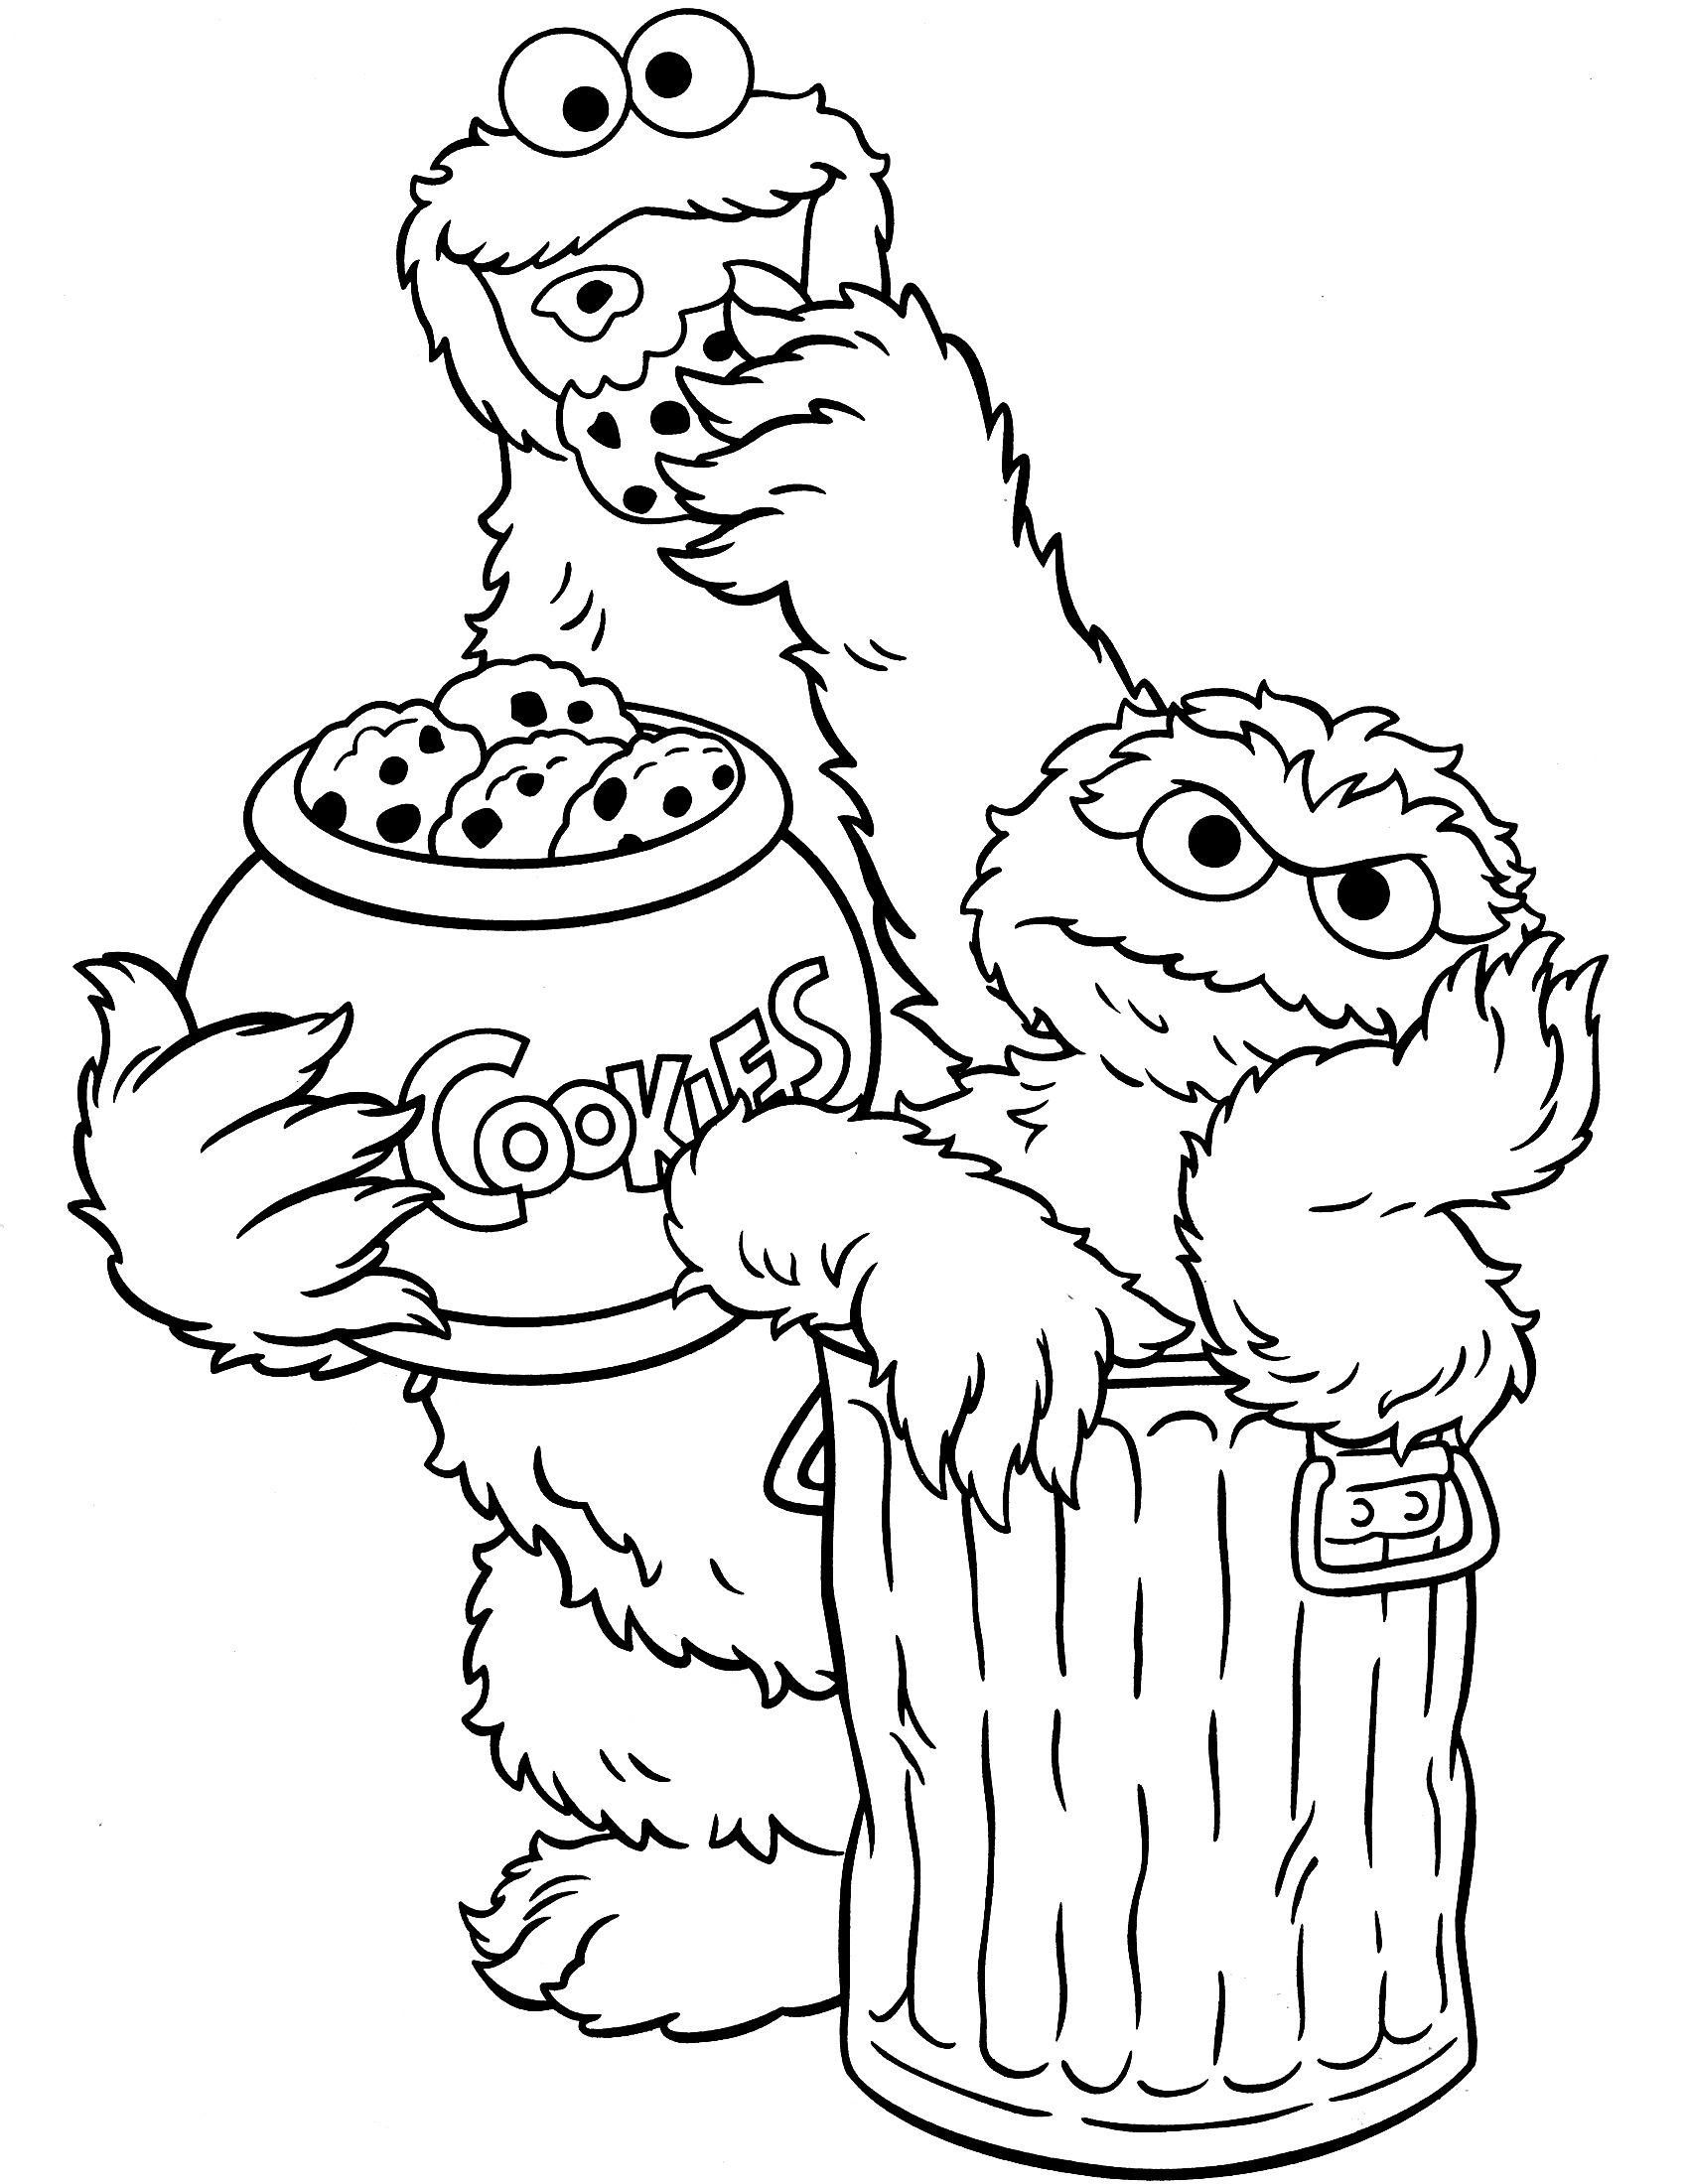 sesame street coloring pages - Google Search | Seseme Party ...